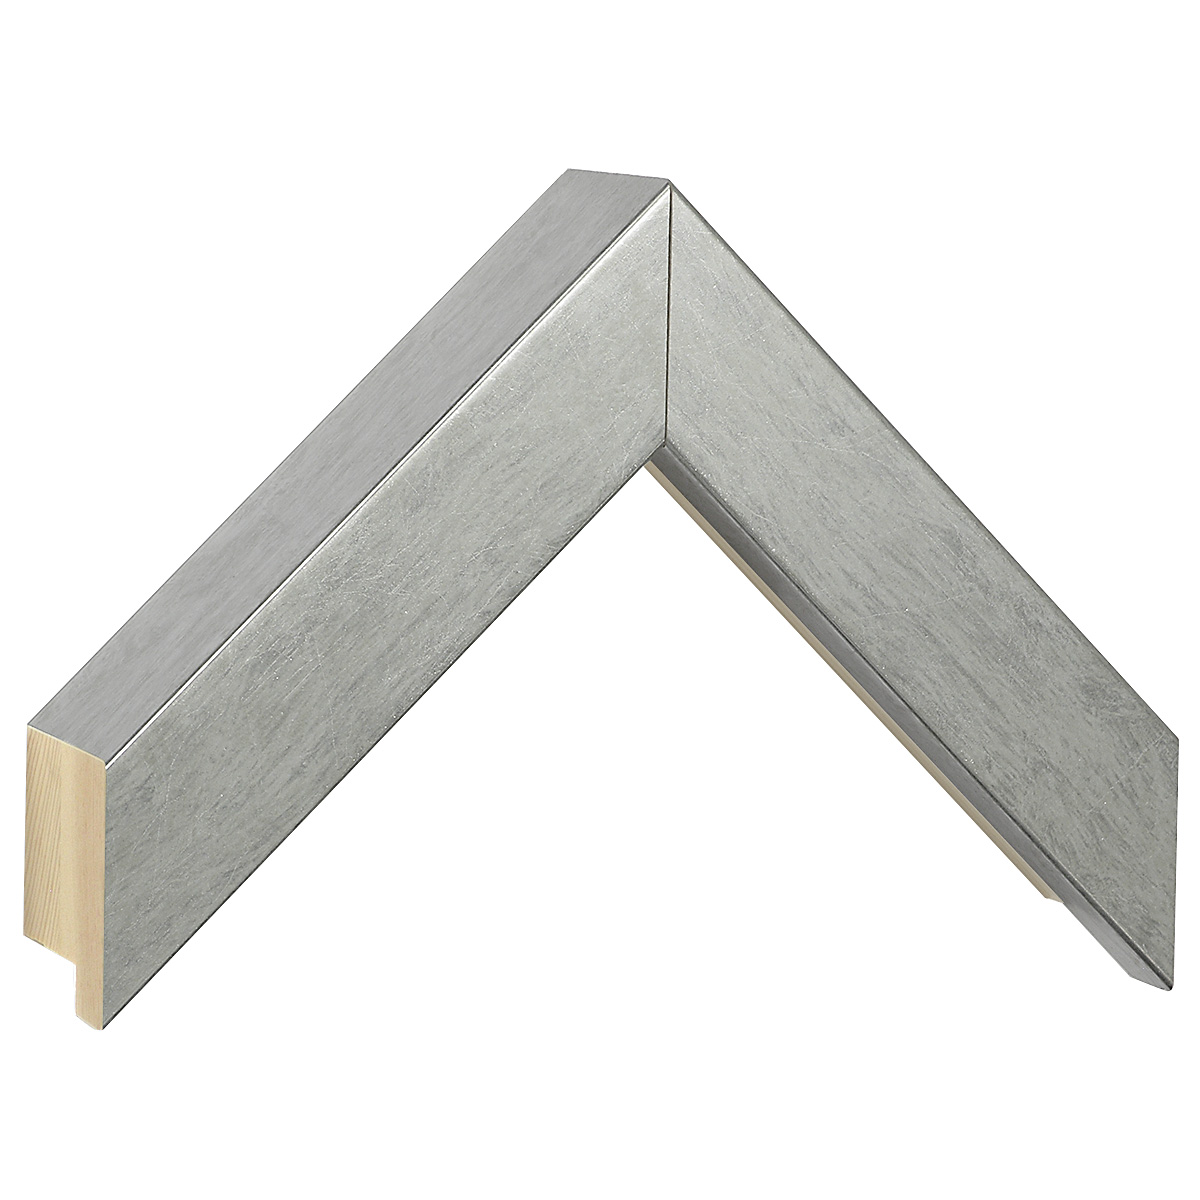 Moulding ayous, width 35mm, height 60, silver